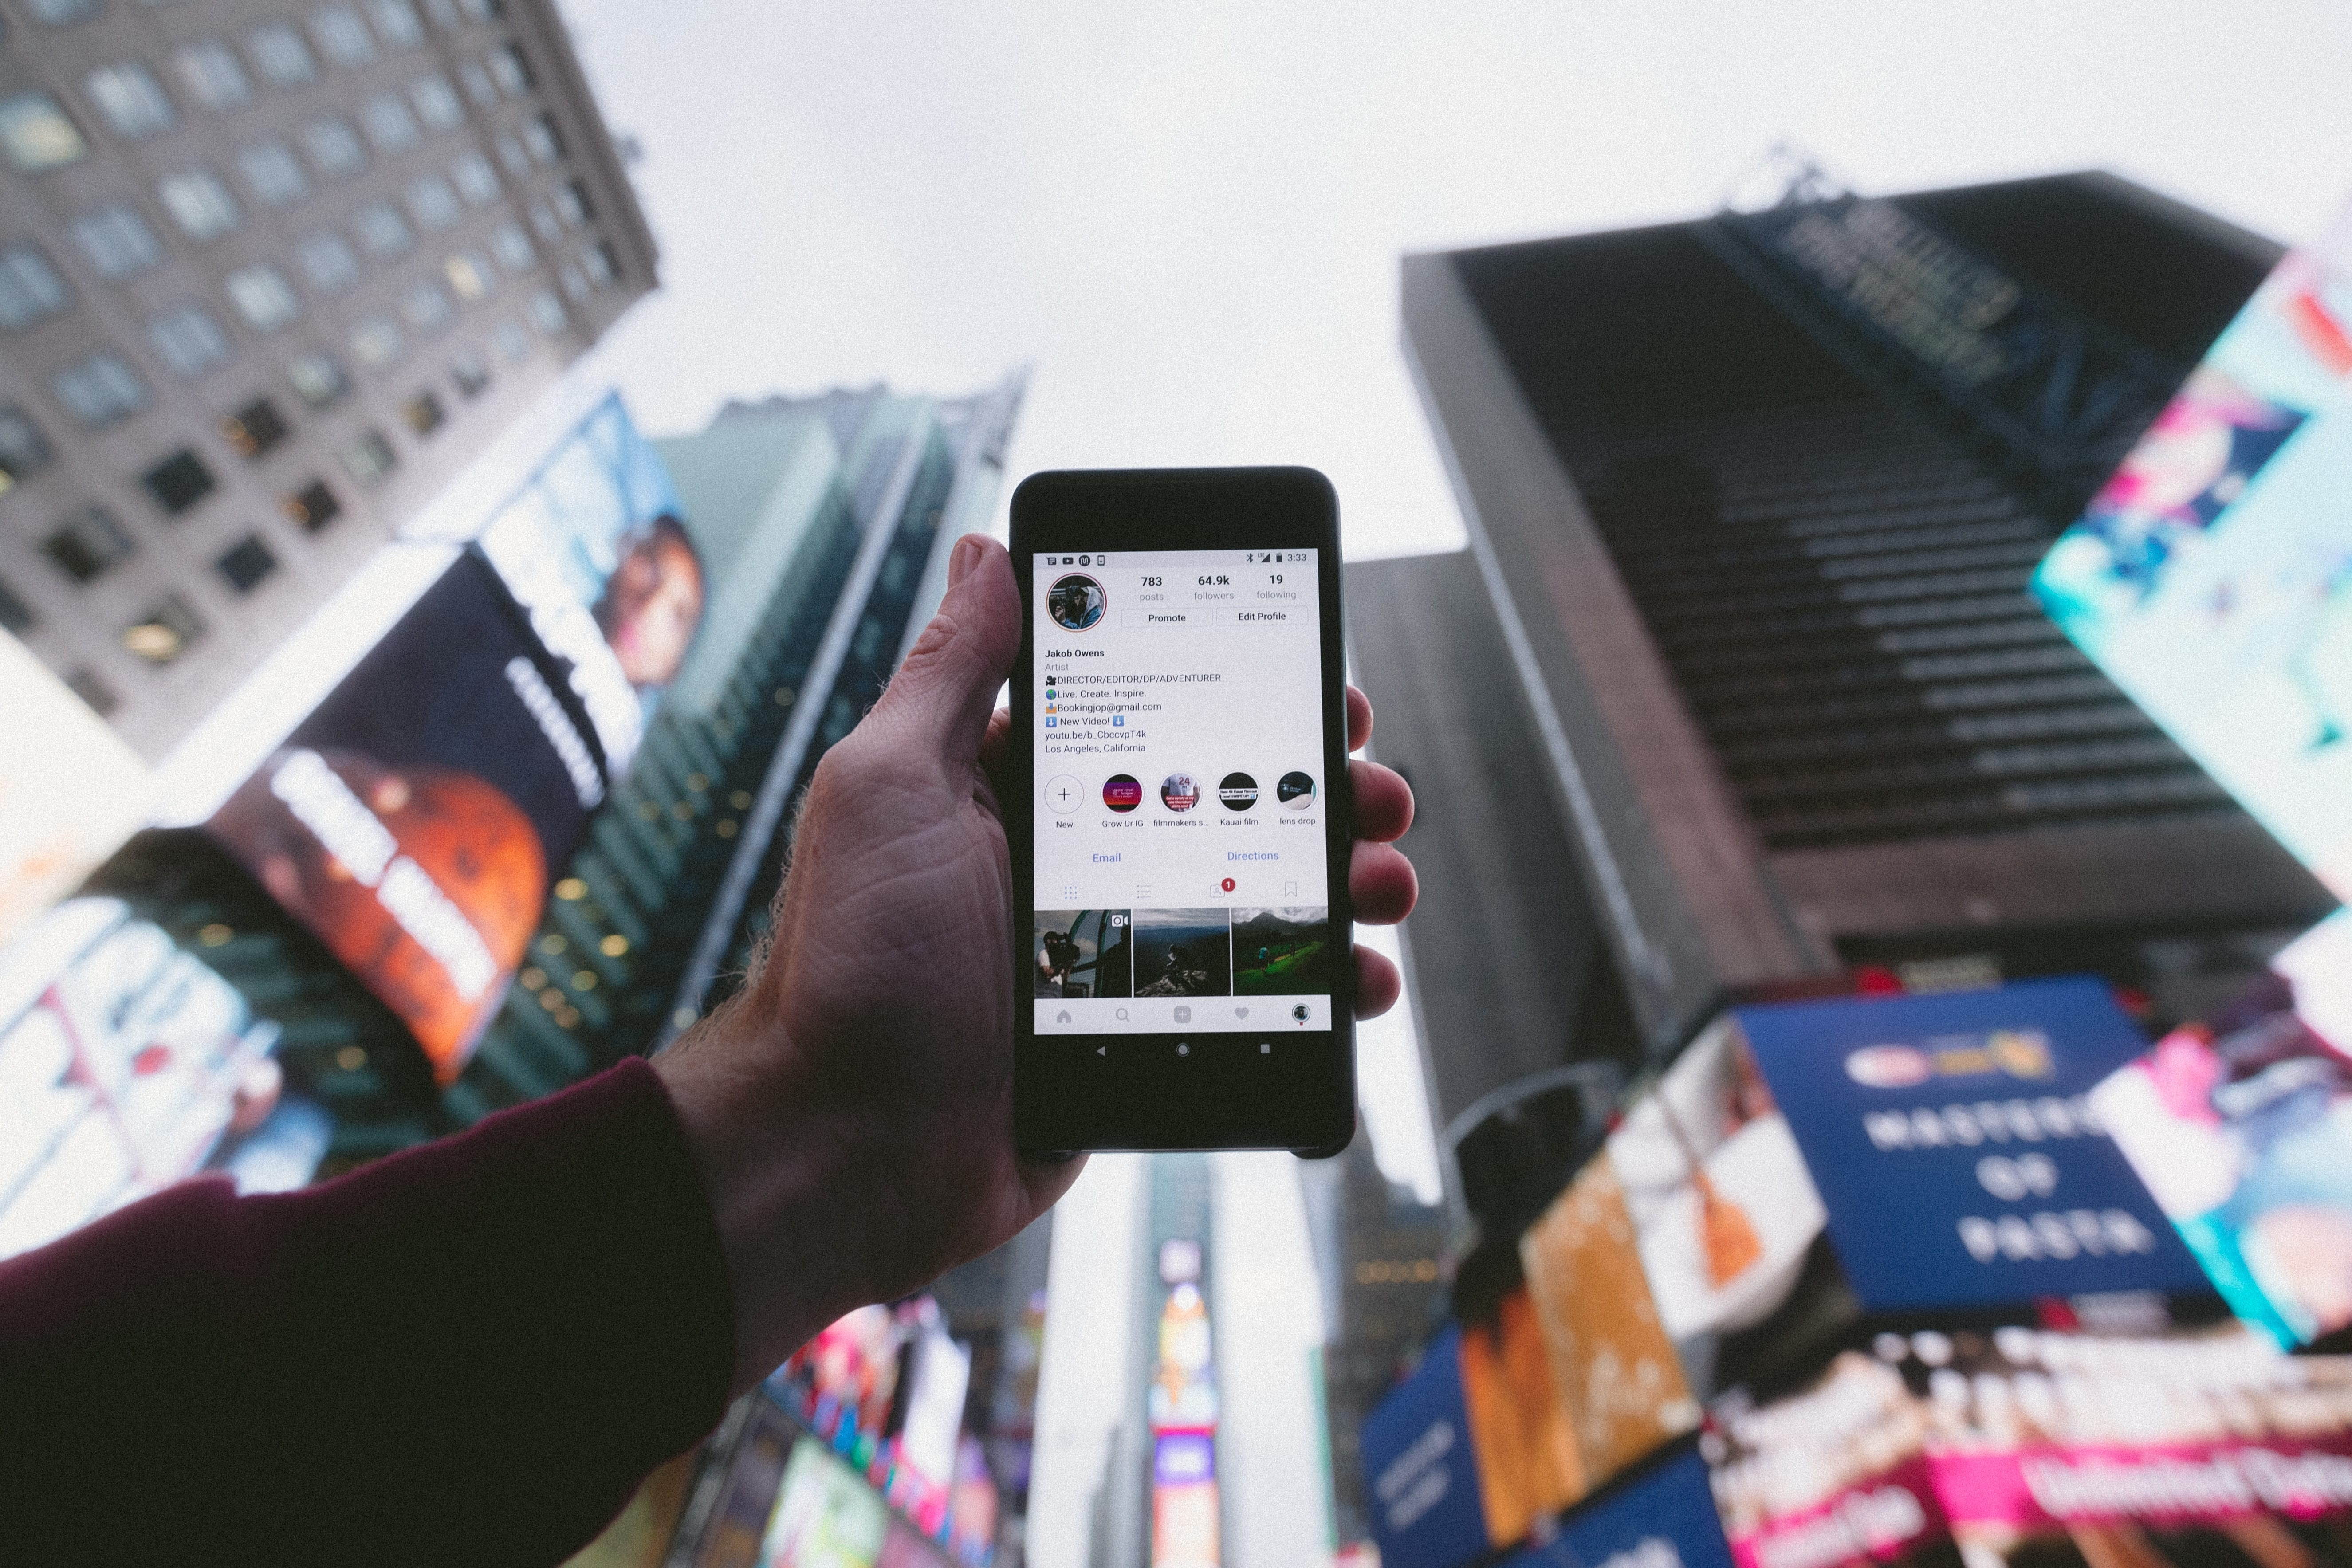 The Influencer Revolution A Social Media Trend Or The New Normal